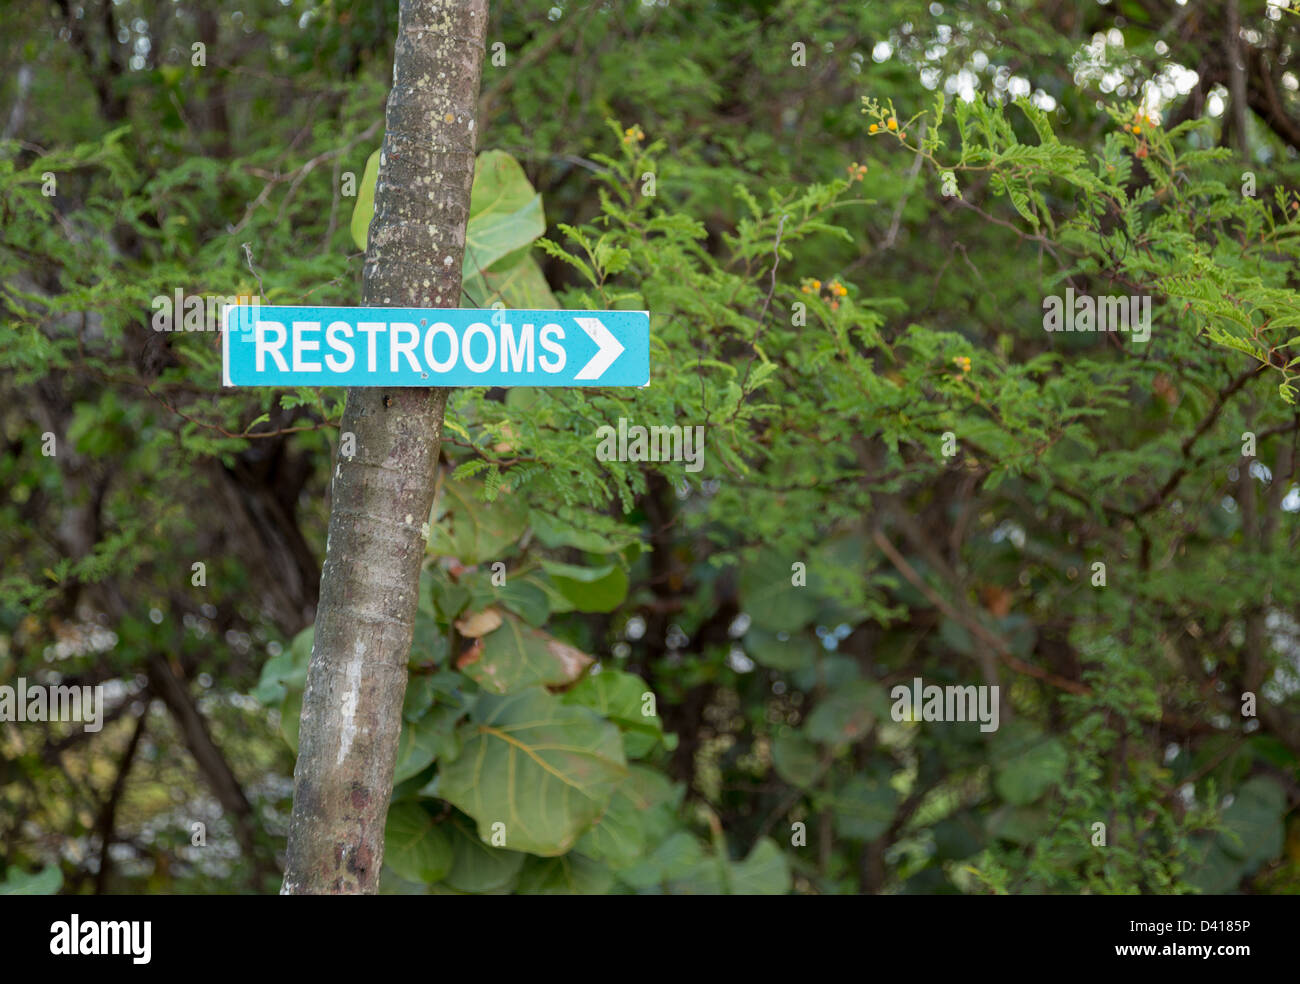 Blue sign pointing way in garden to restrooms or toilets - Stock Image